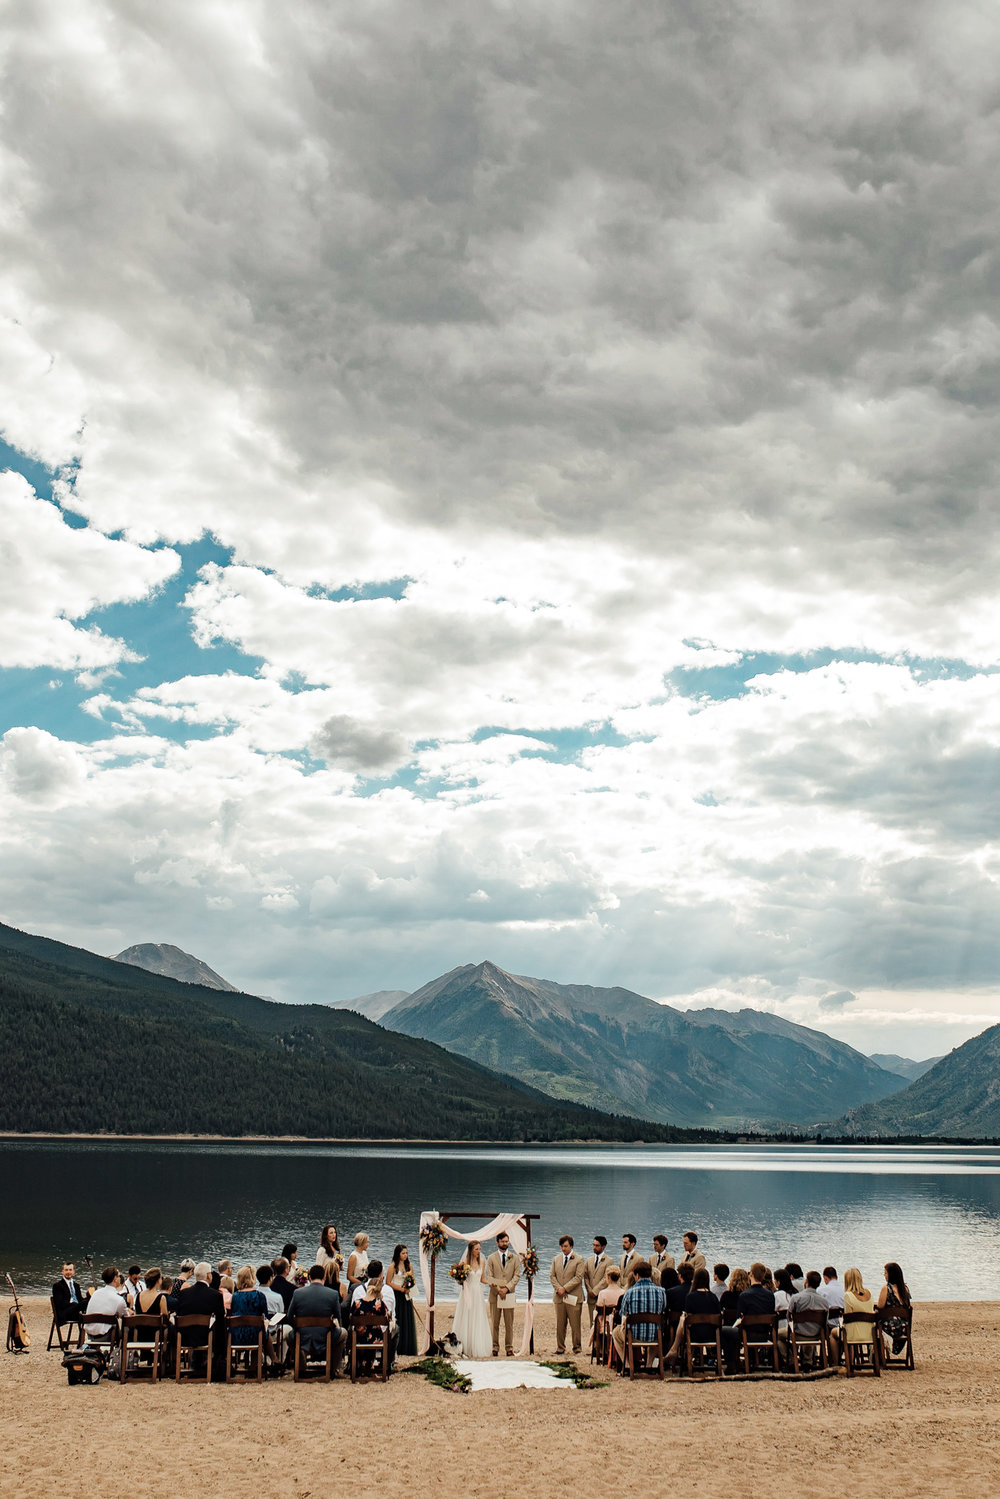 twin-lakes-colorado-colorado-wedding-photographer-twin-lakes-wedding-photographer-aspen-wedding-thewarmtharoundyou (3 of 5).jpg